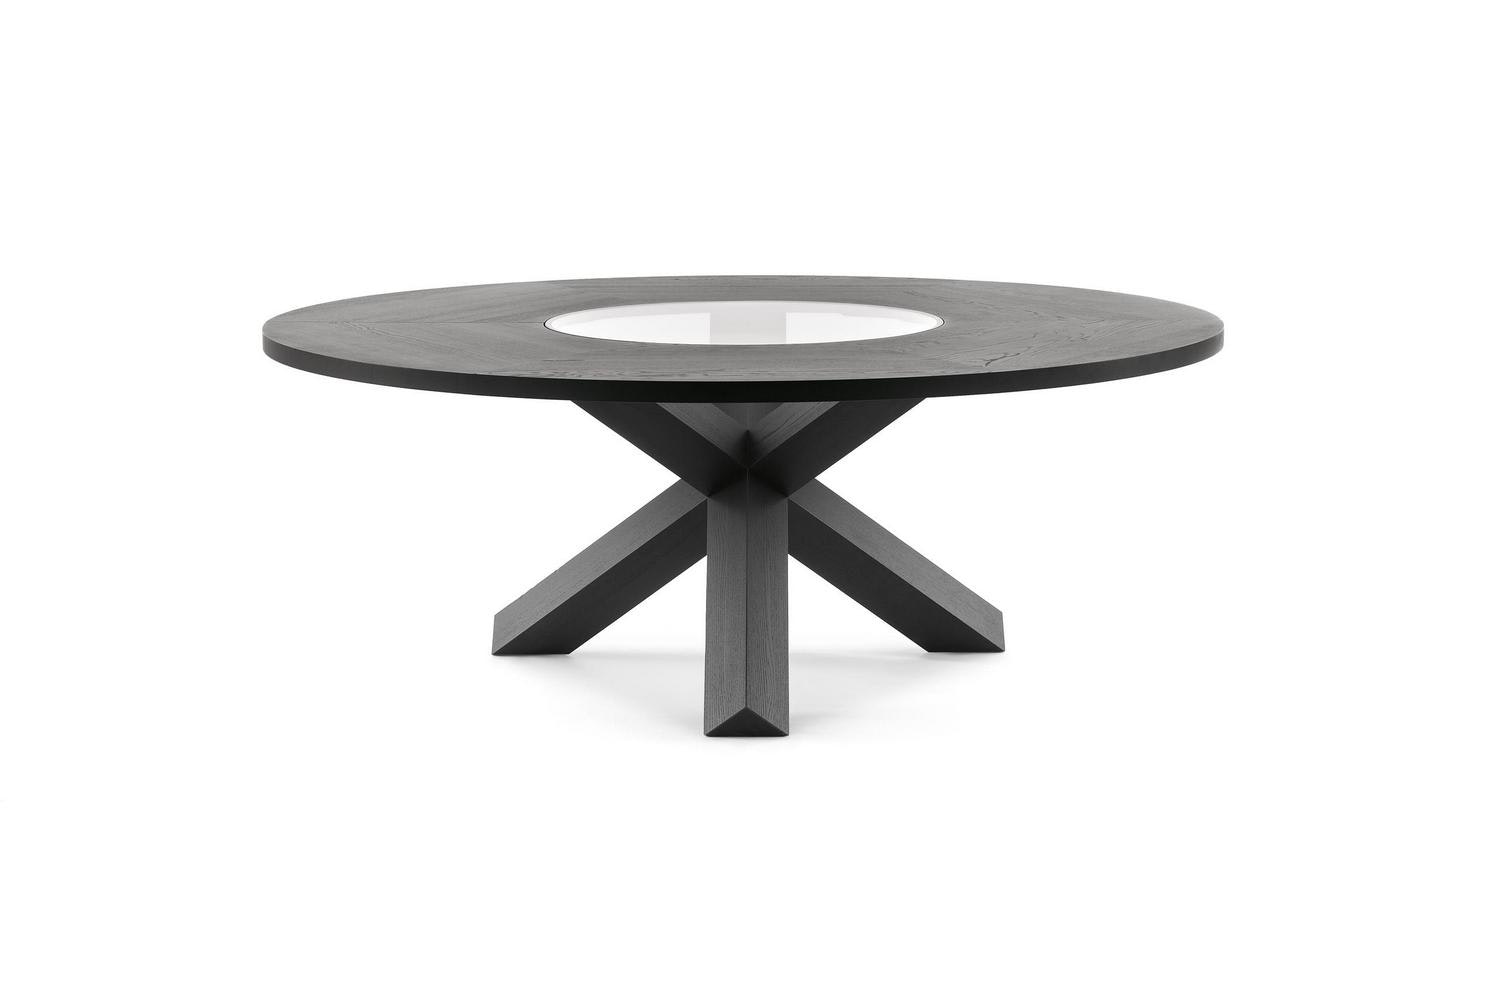 456 Pantheon Table by Mario Bellini for Cassina